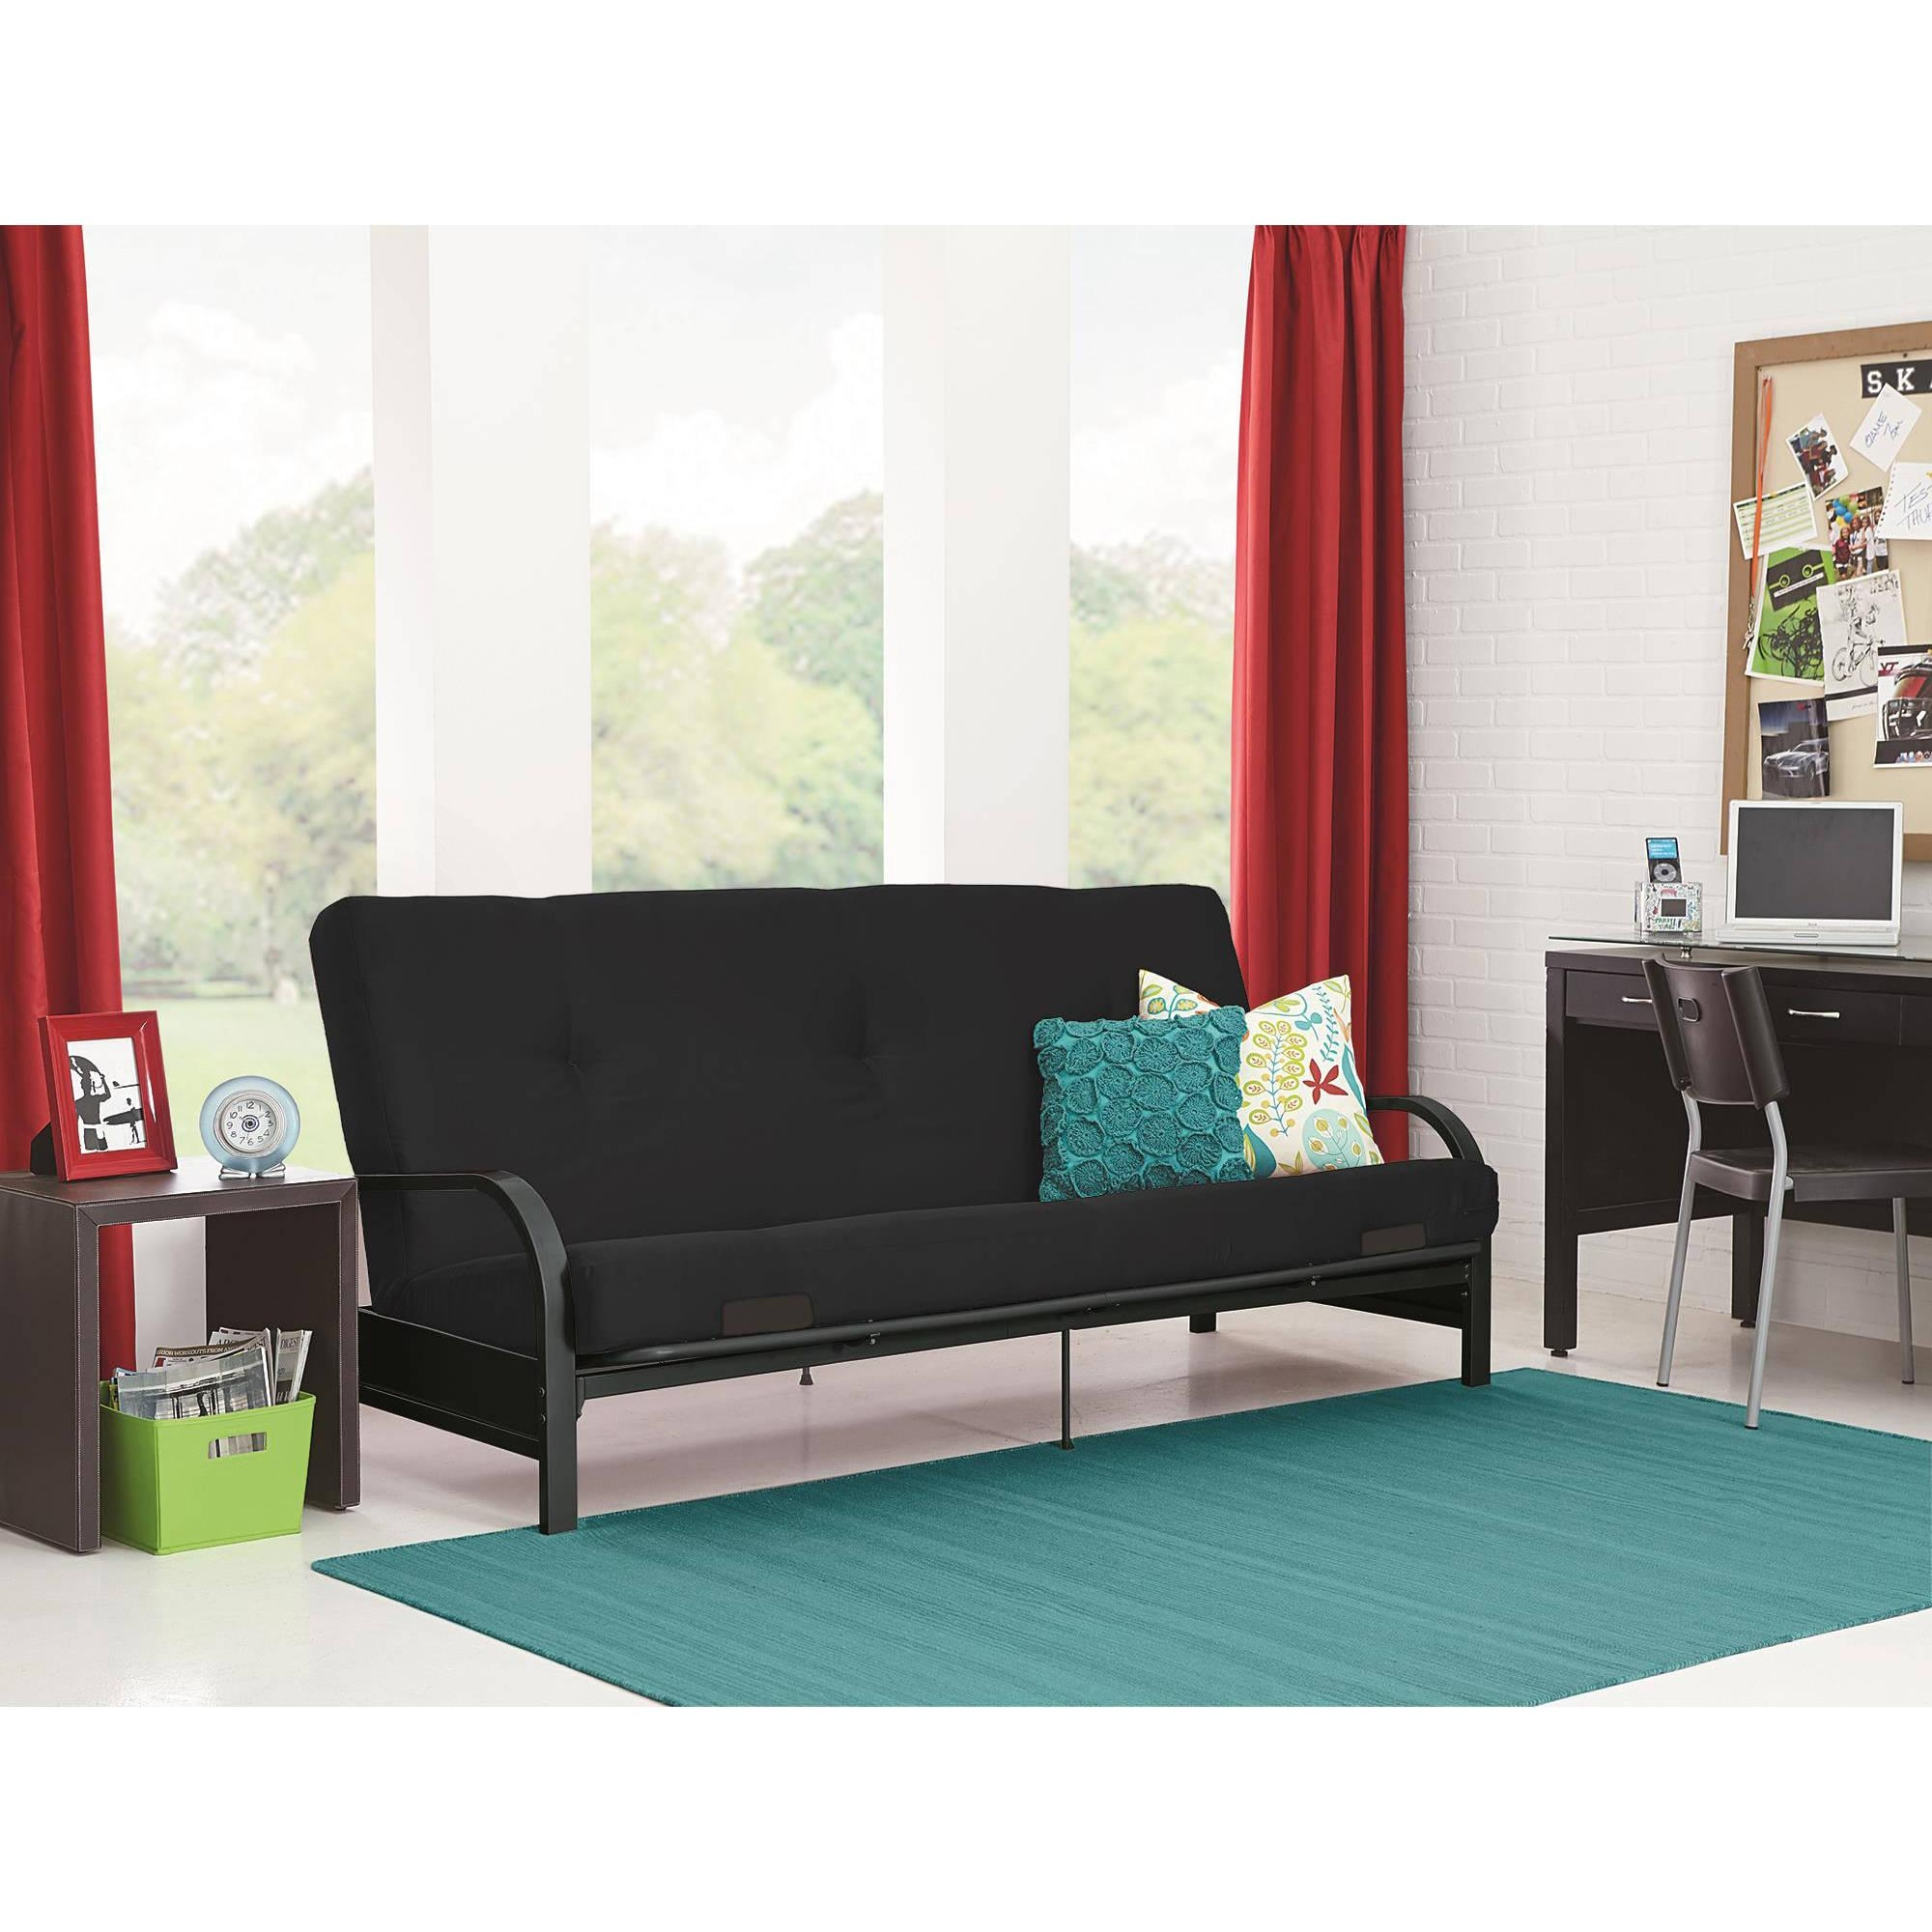 Decor: Using Beautiful Target Couch Covers For Pretty Furniture Intended For Target Couch Beds (View 17 of 20)